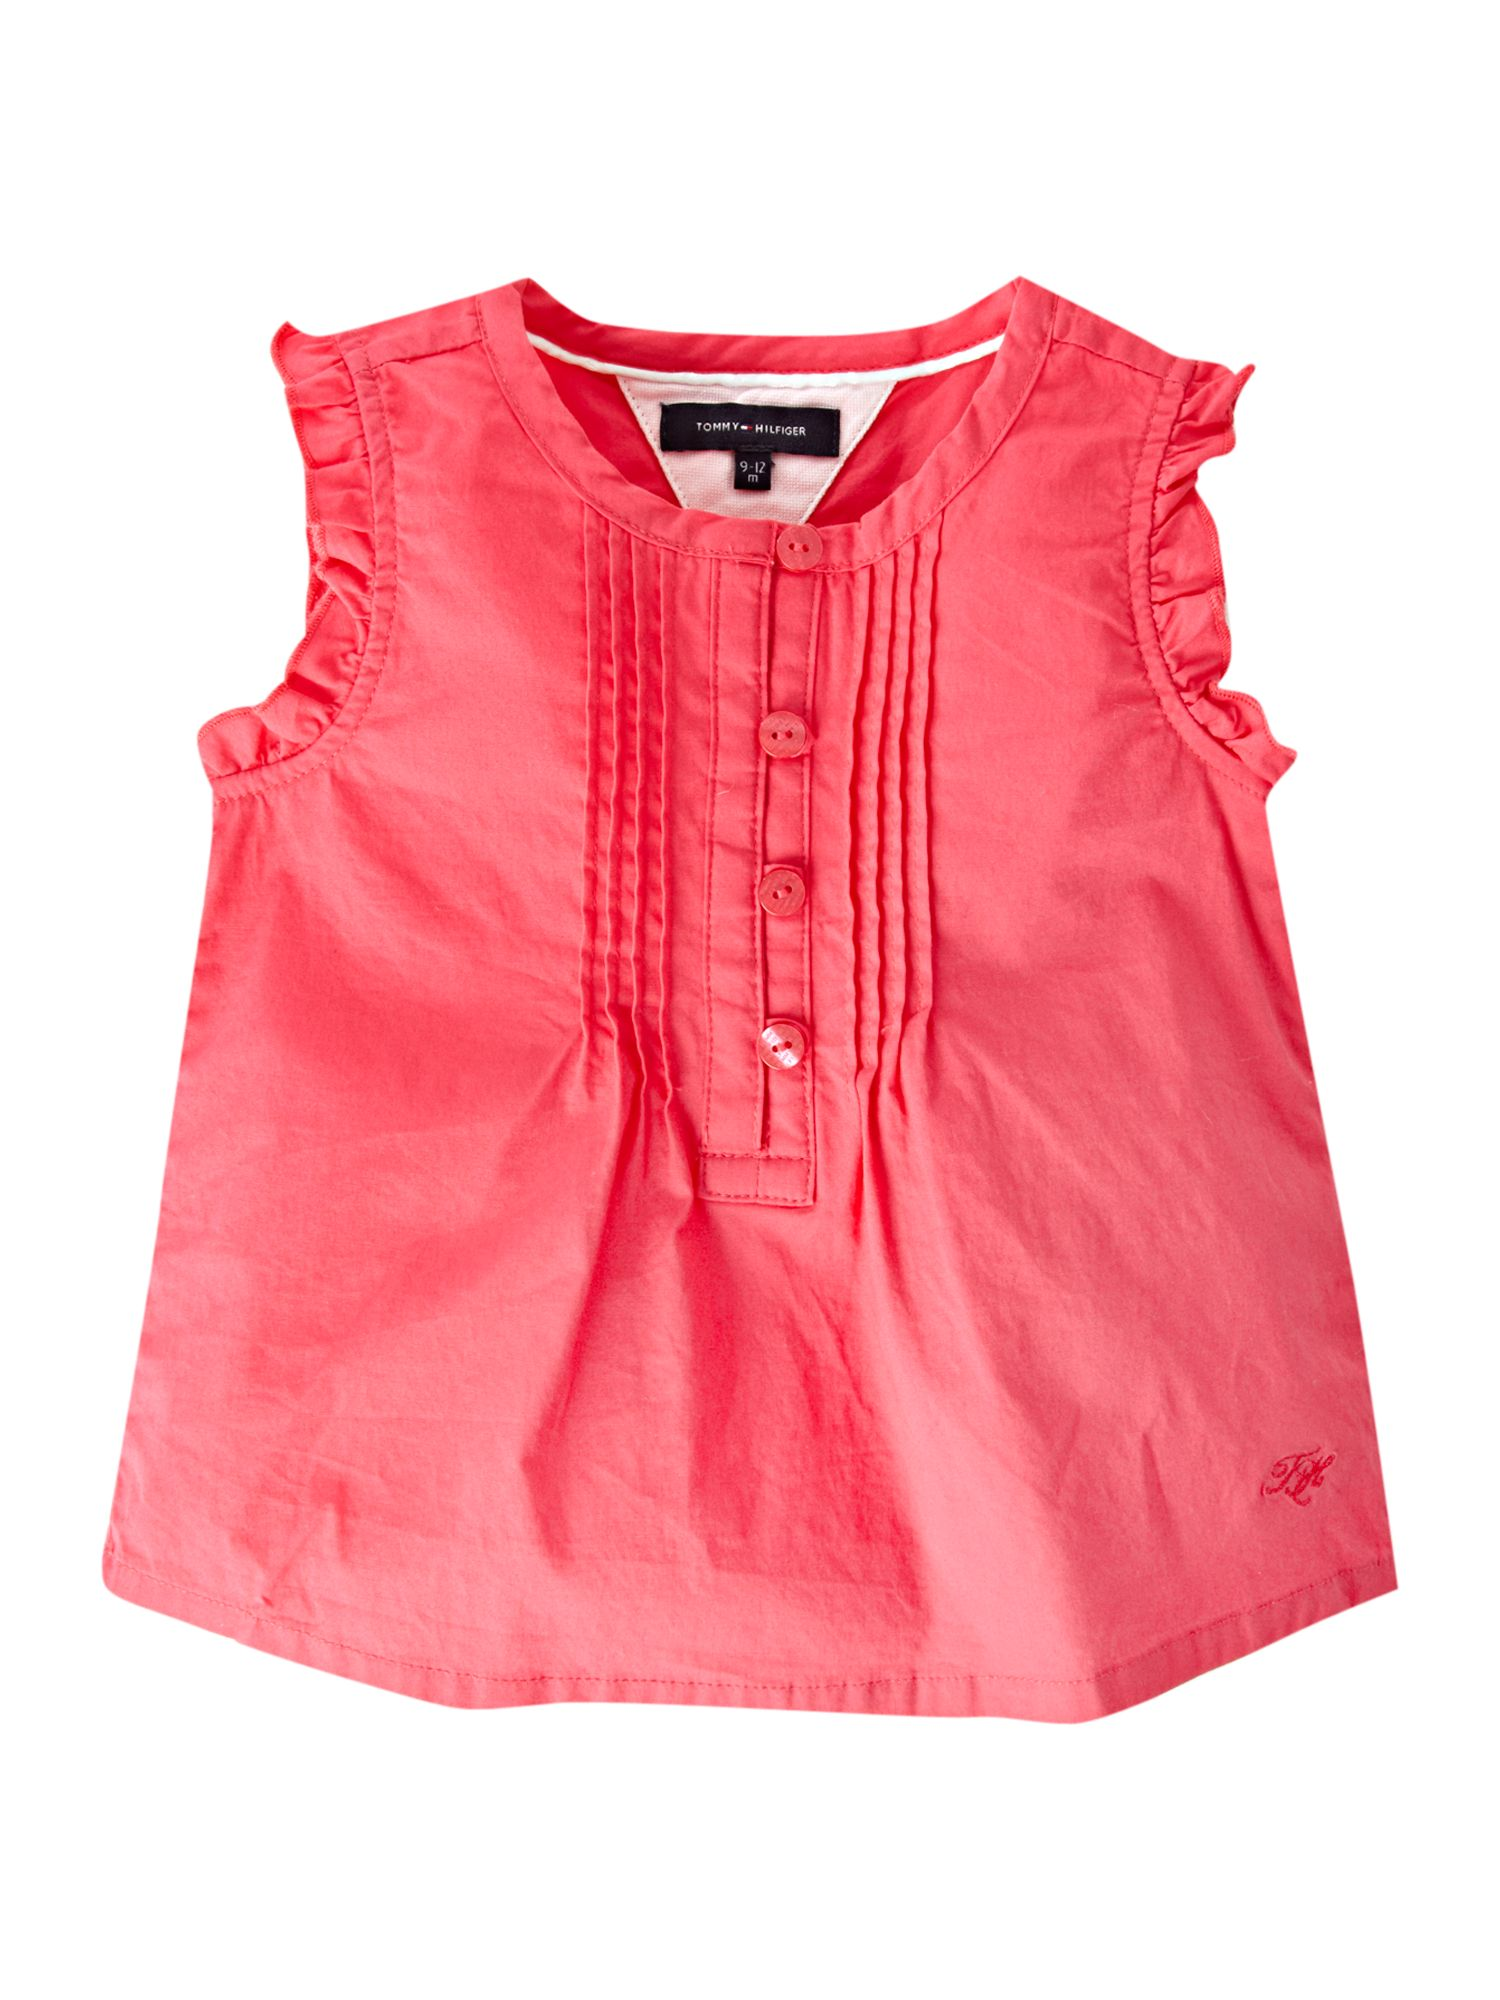 Tommy Hilfiger Faye blouse - Red `6-9 mths,3 yrs,18-24 mths product image